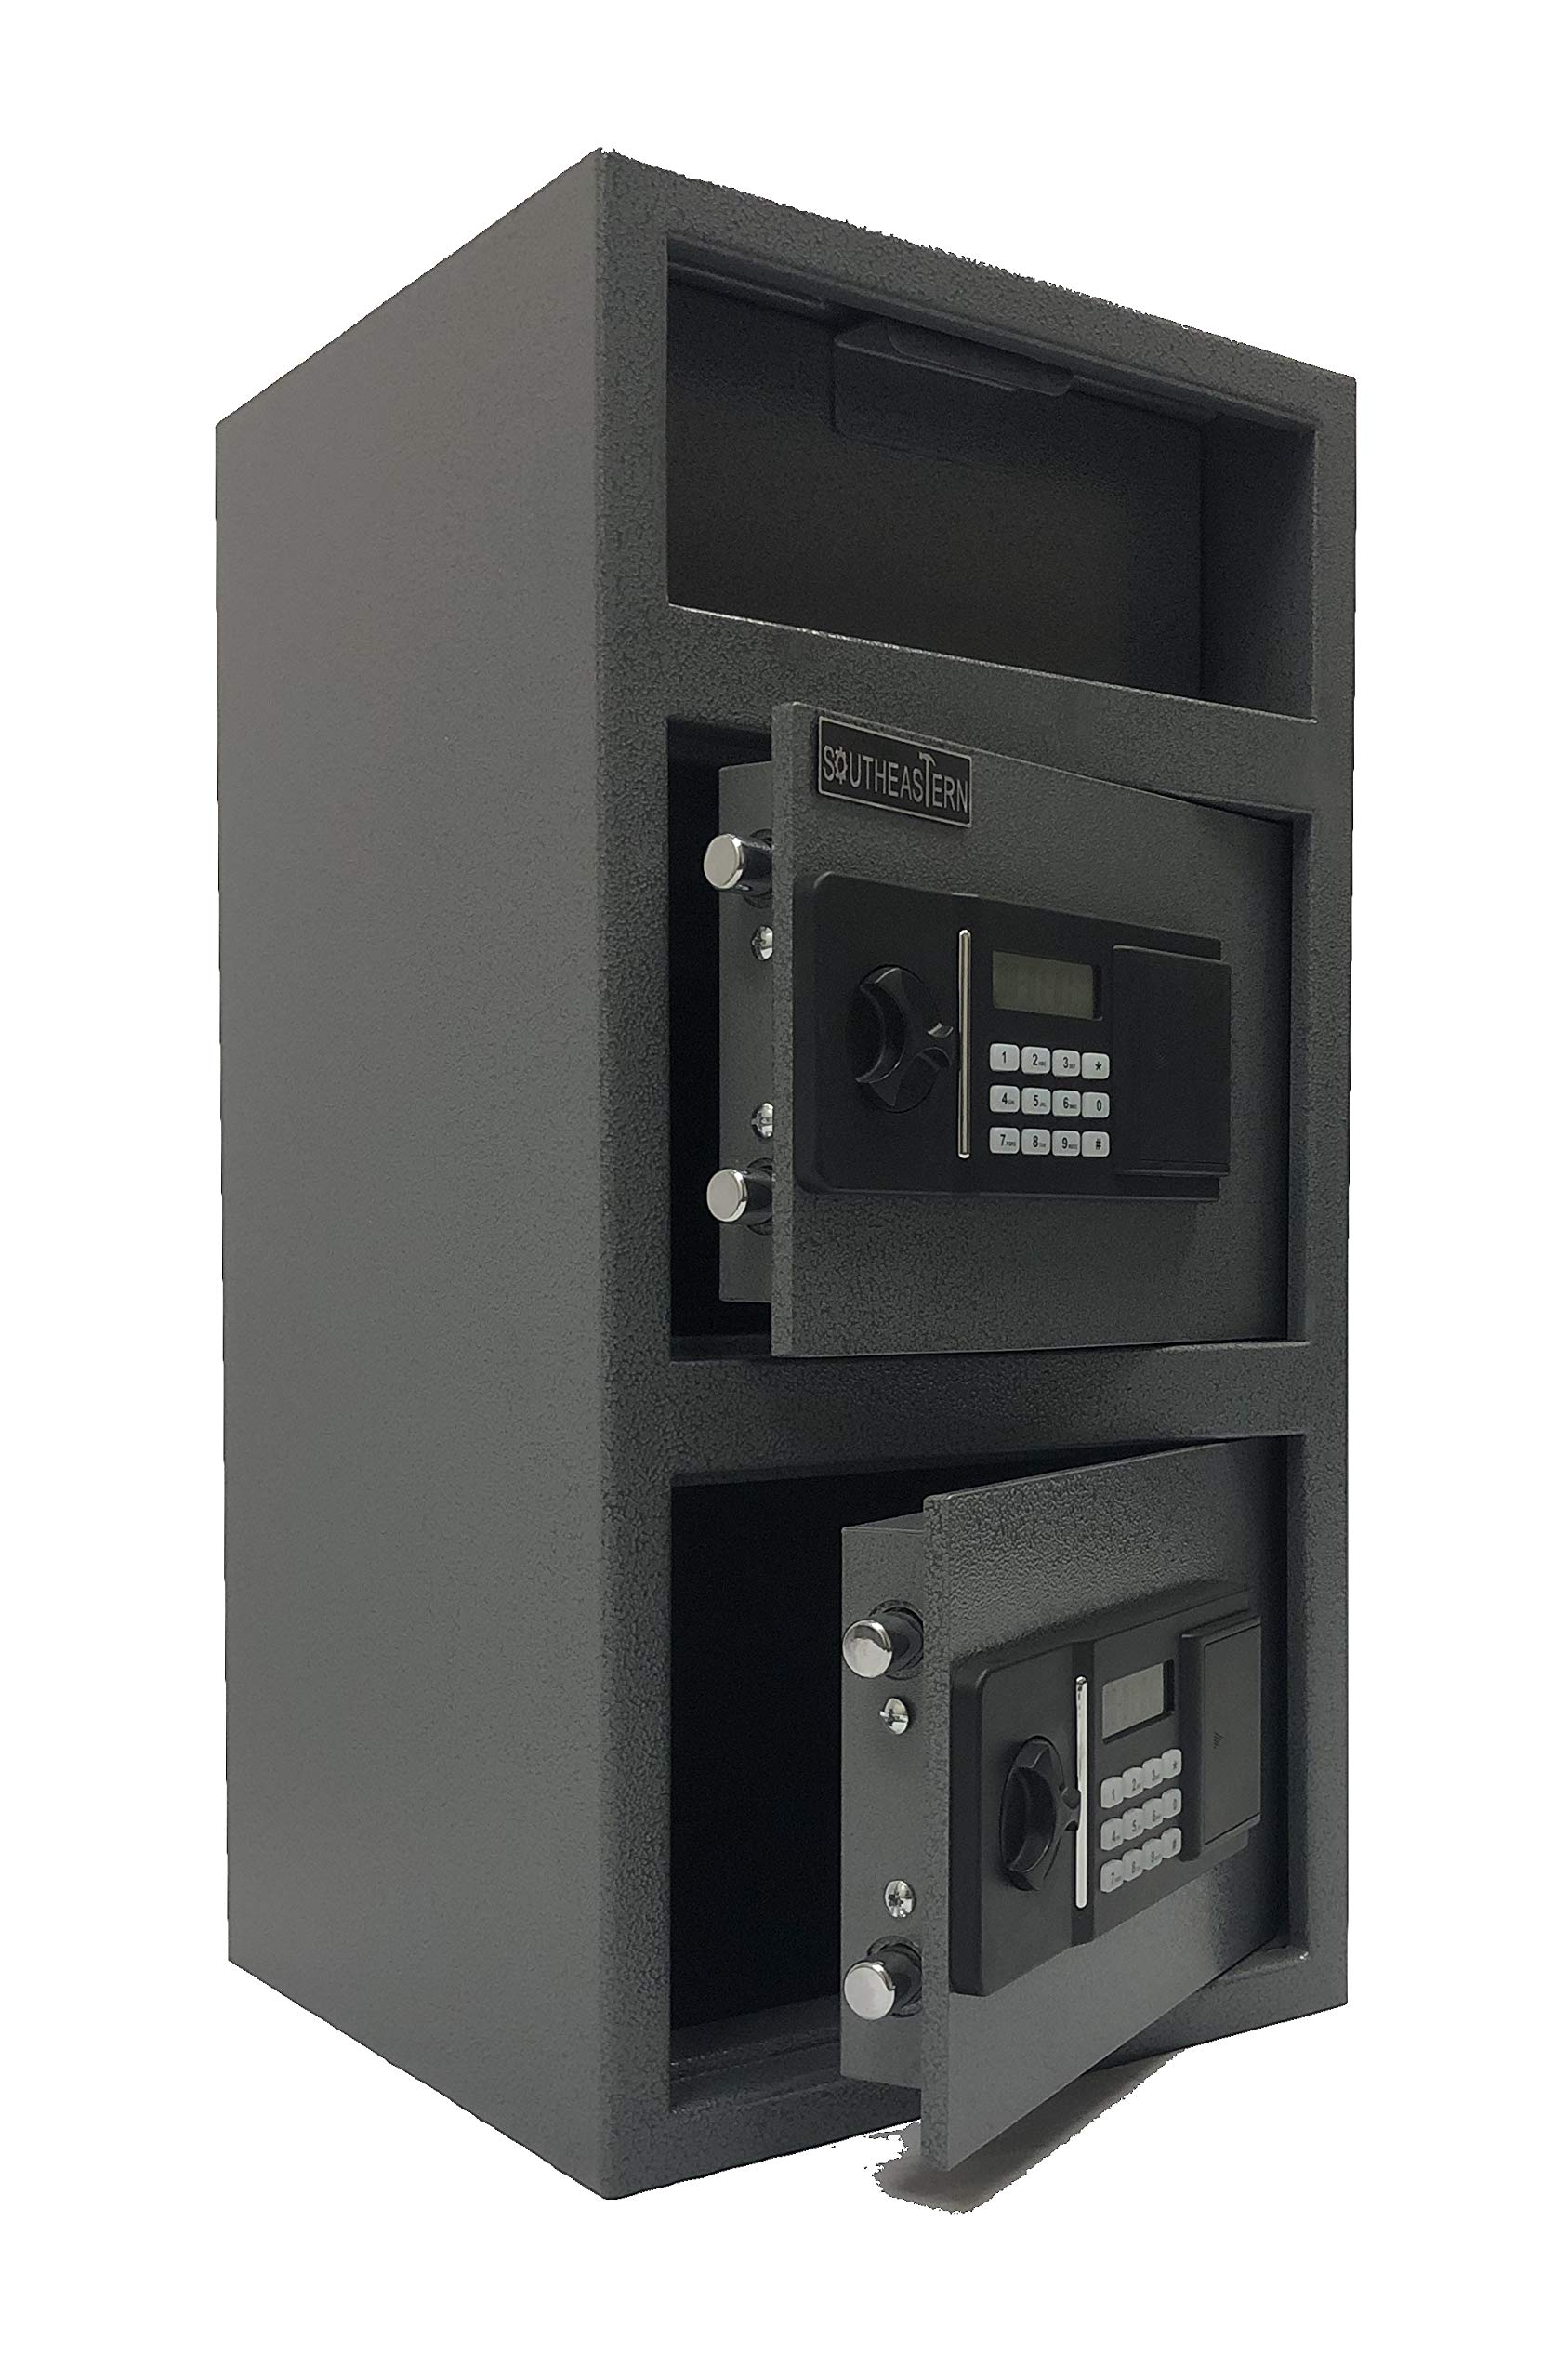 SOUTHEASTERN FL2714EE Double Door Cash Drop Depository Safe with Quick Access Electronic Lock